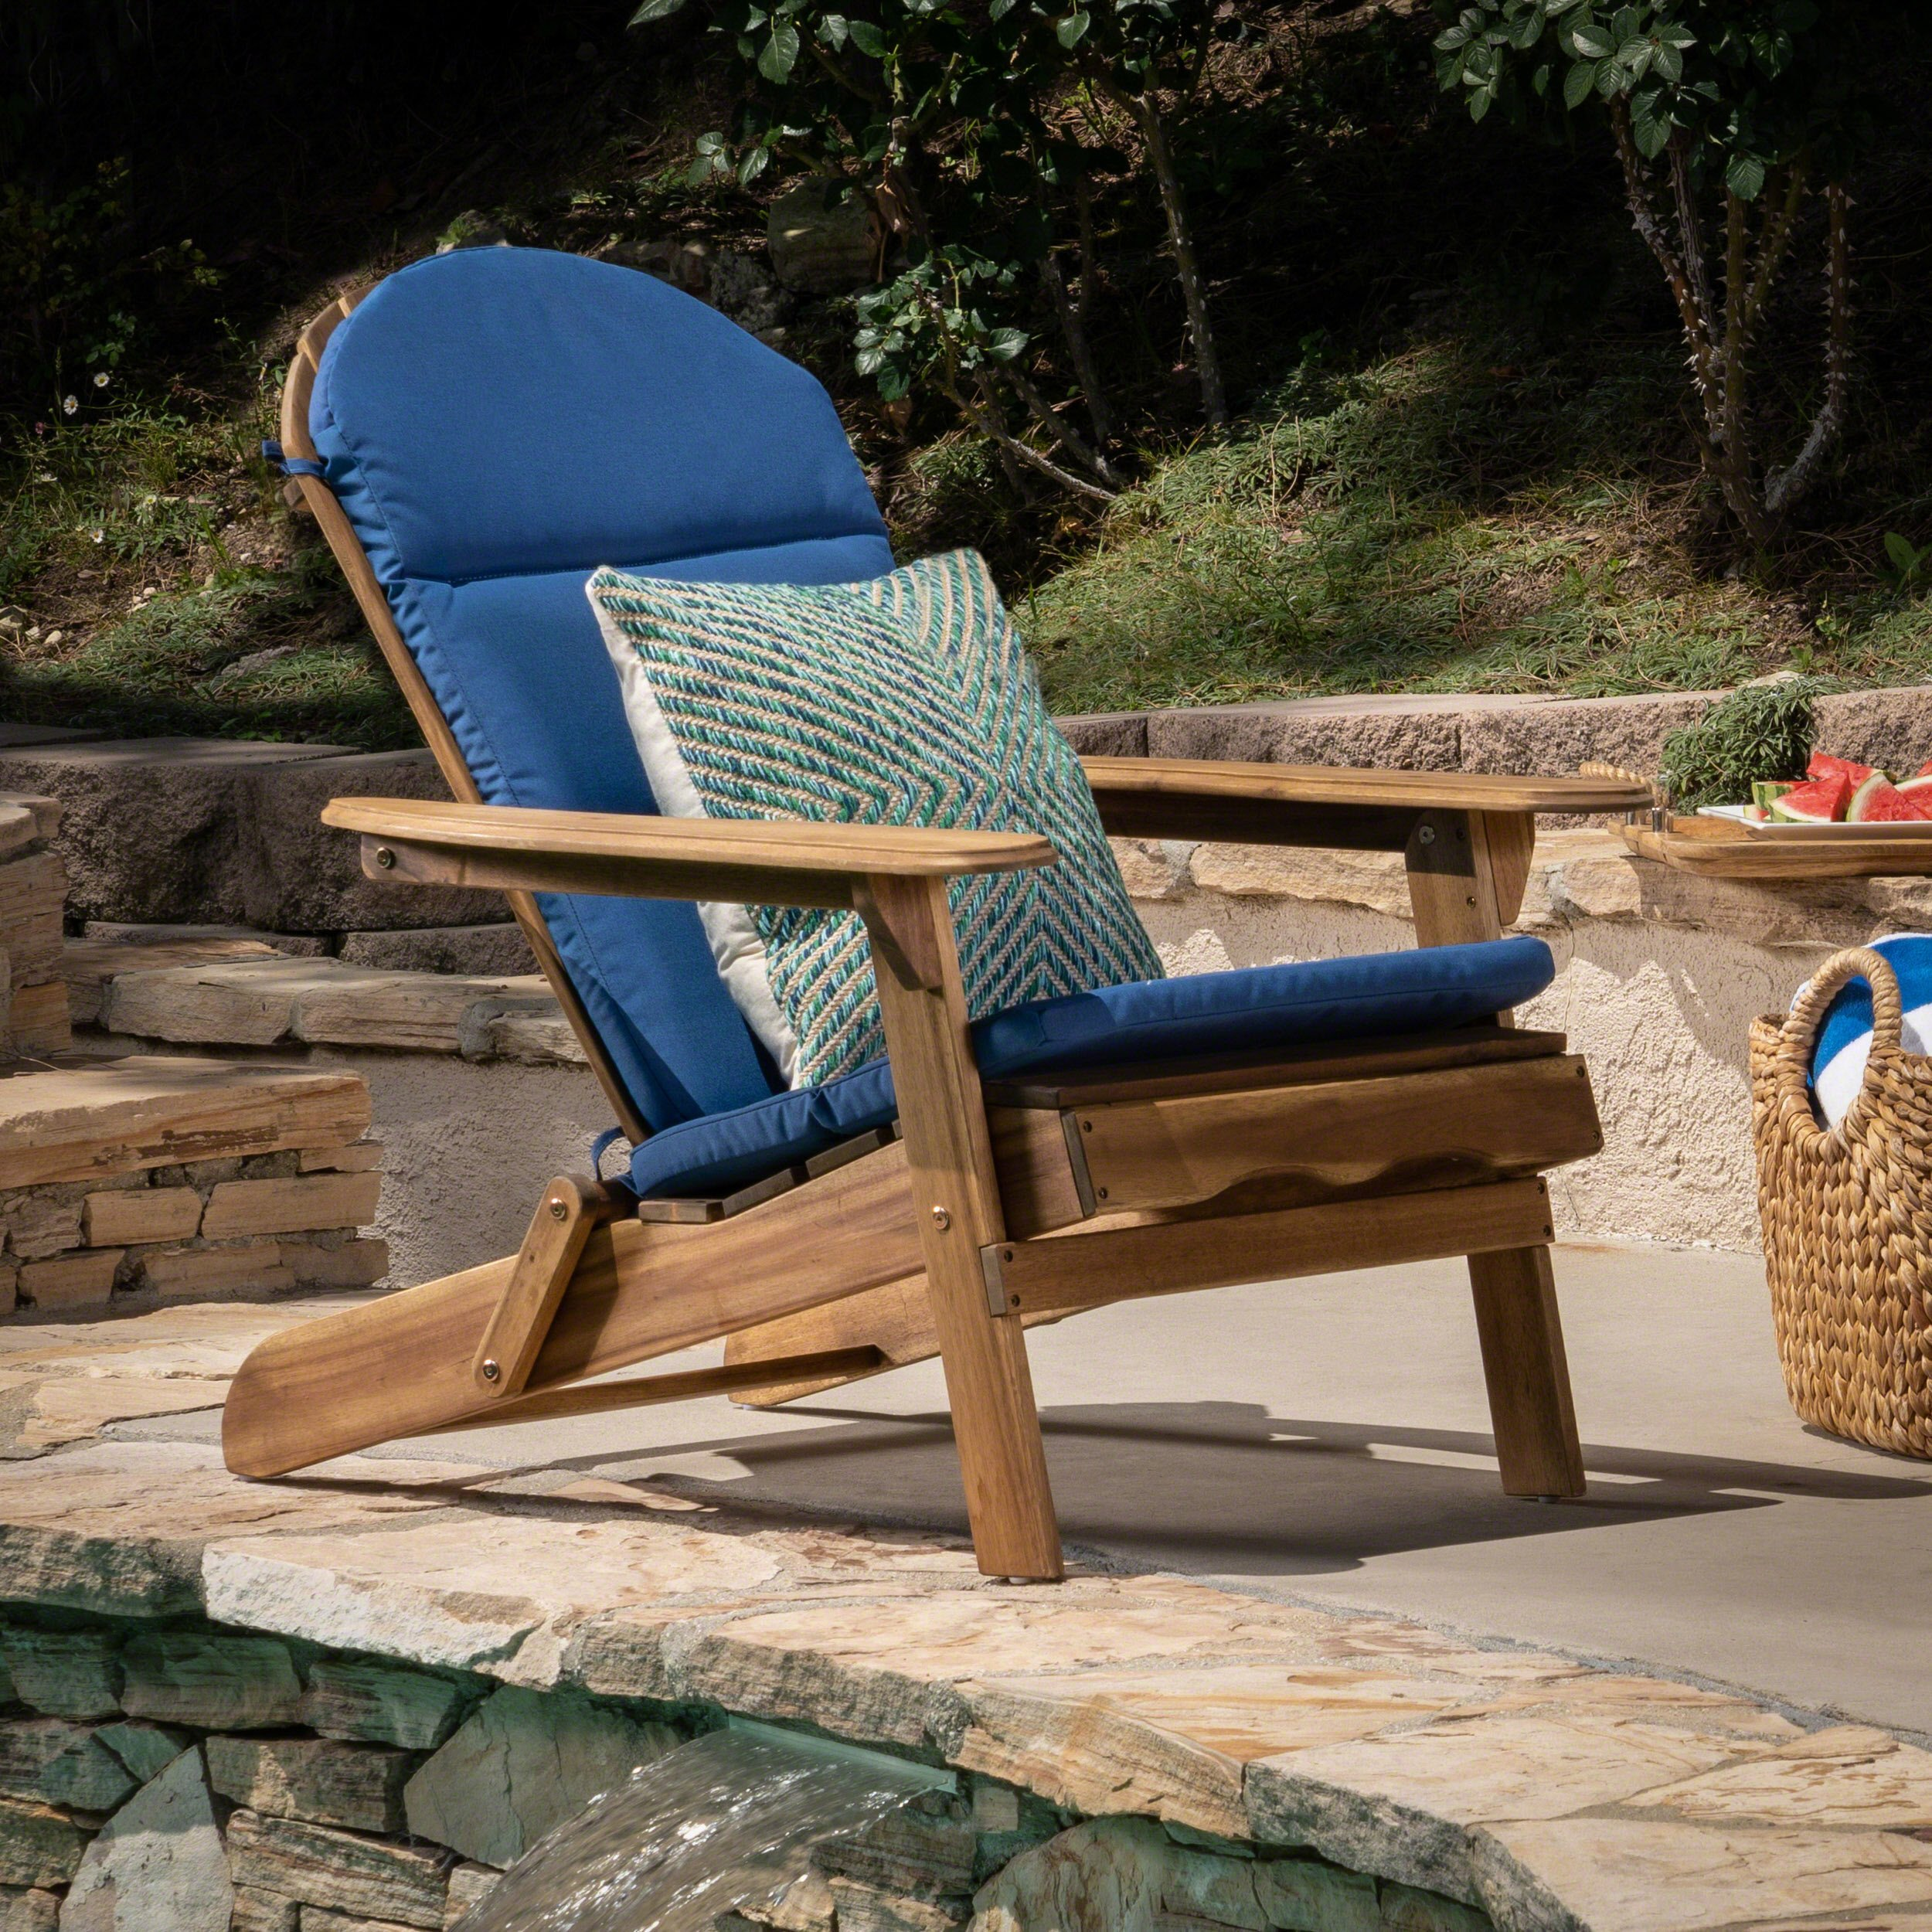 Christopher Knight Home 304531 Reed Outdoor Adirondack Chair Cushion | in Navy Blue by Christopher Knight Home